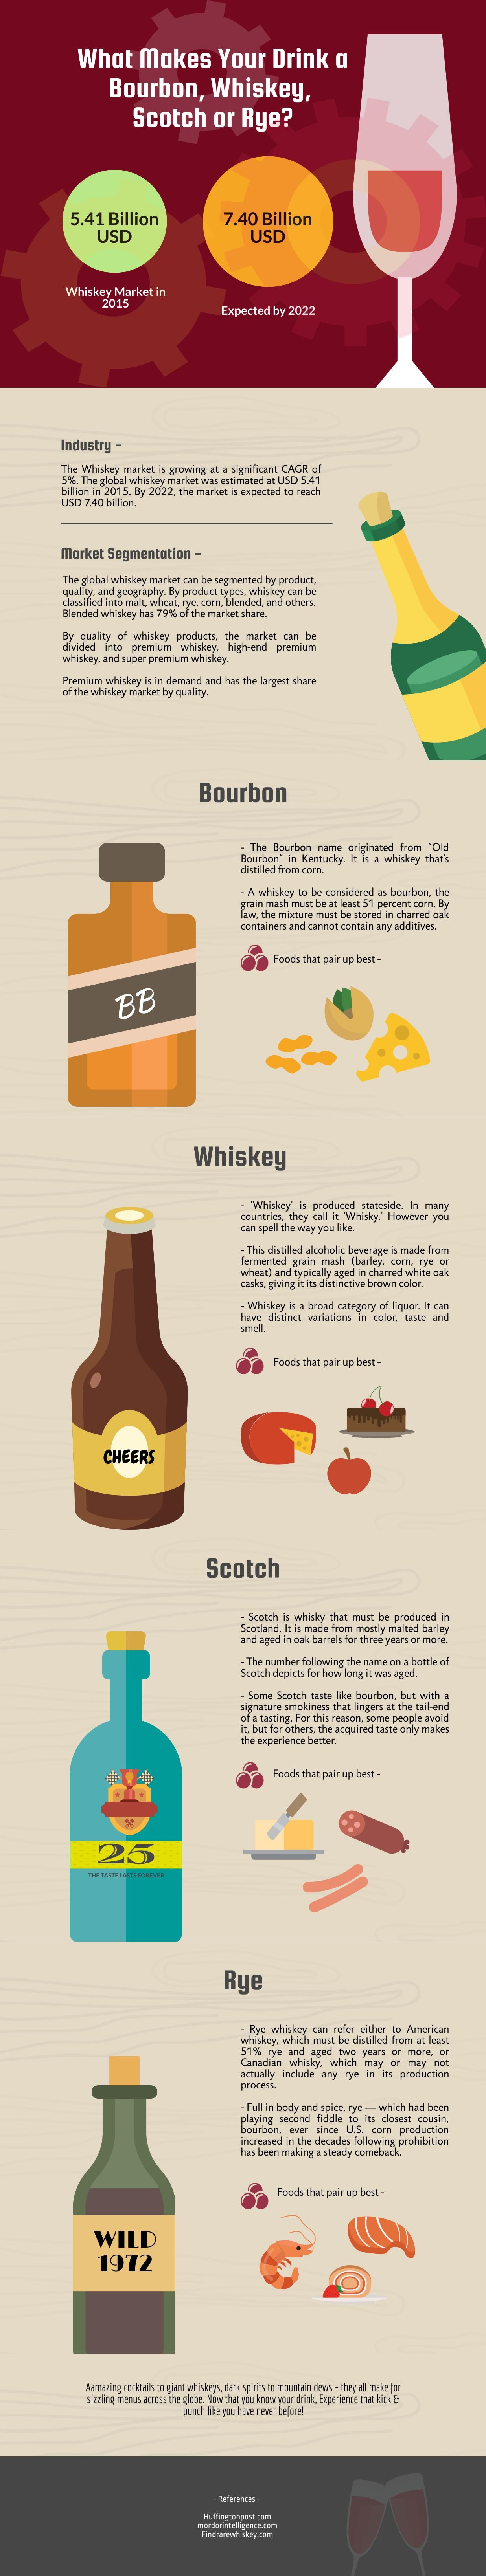 Know Your Drink - What Makes it a Whisky, Bourbon, Rye or Scotch?